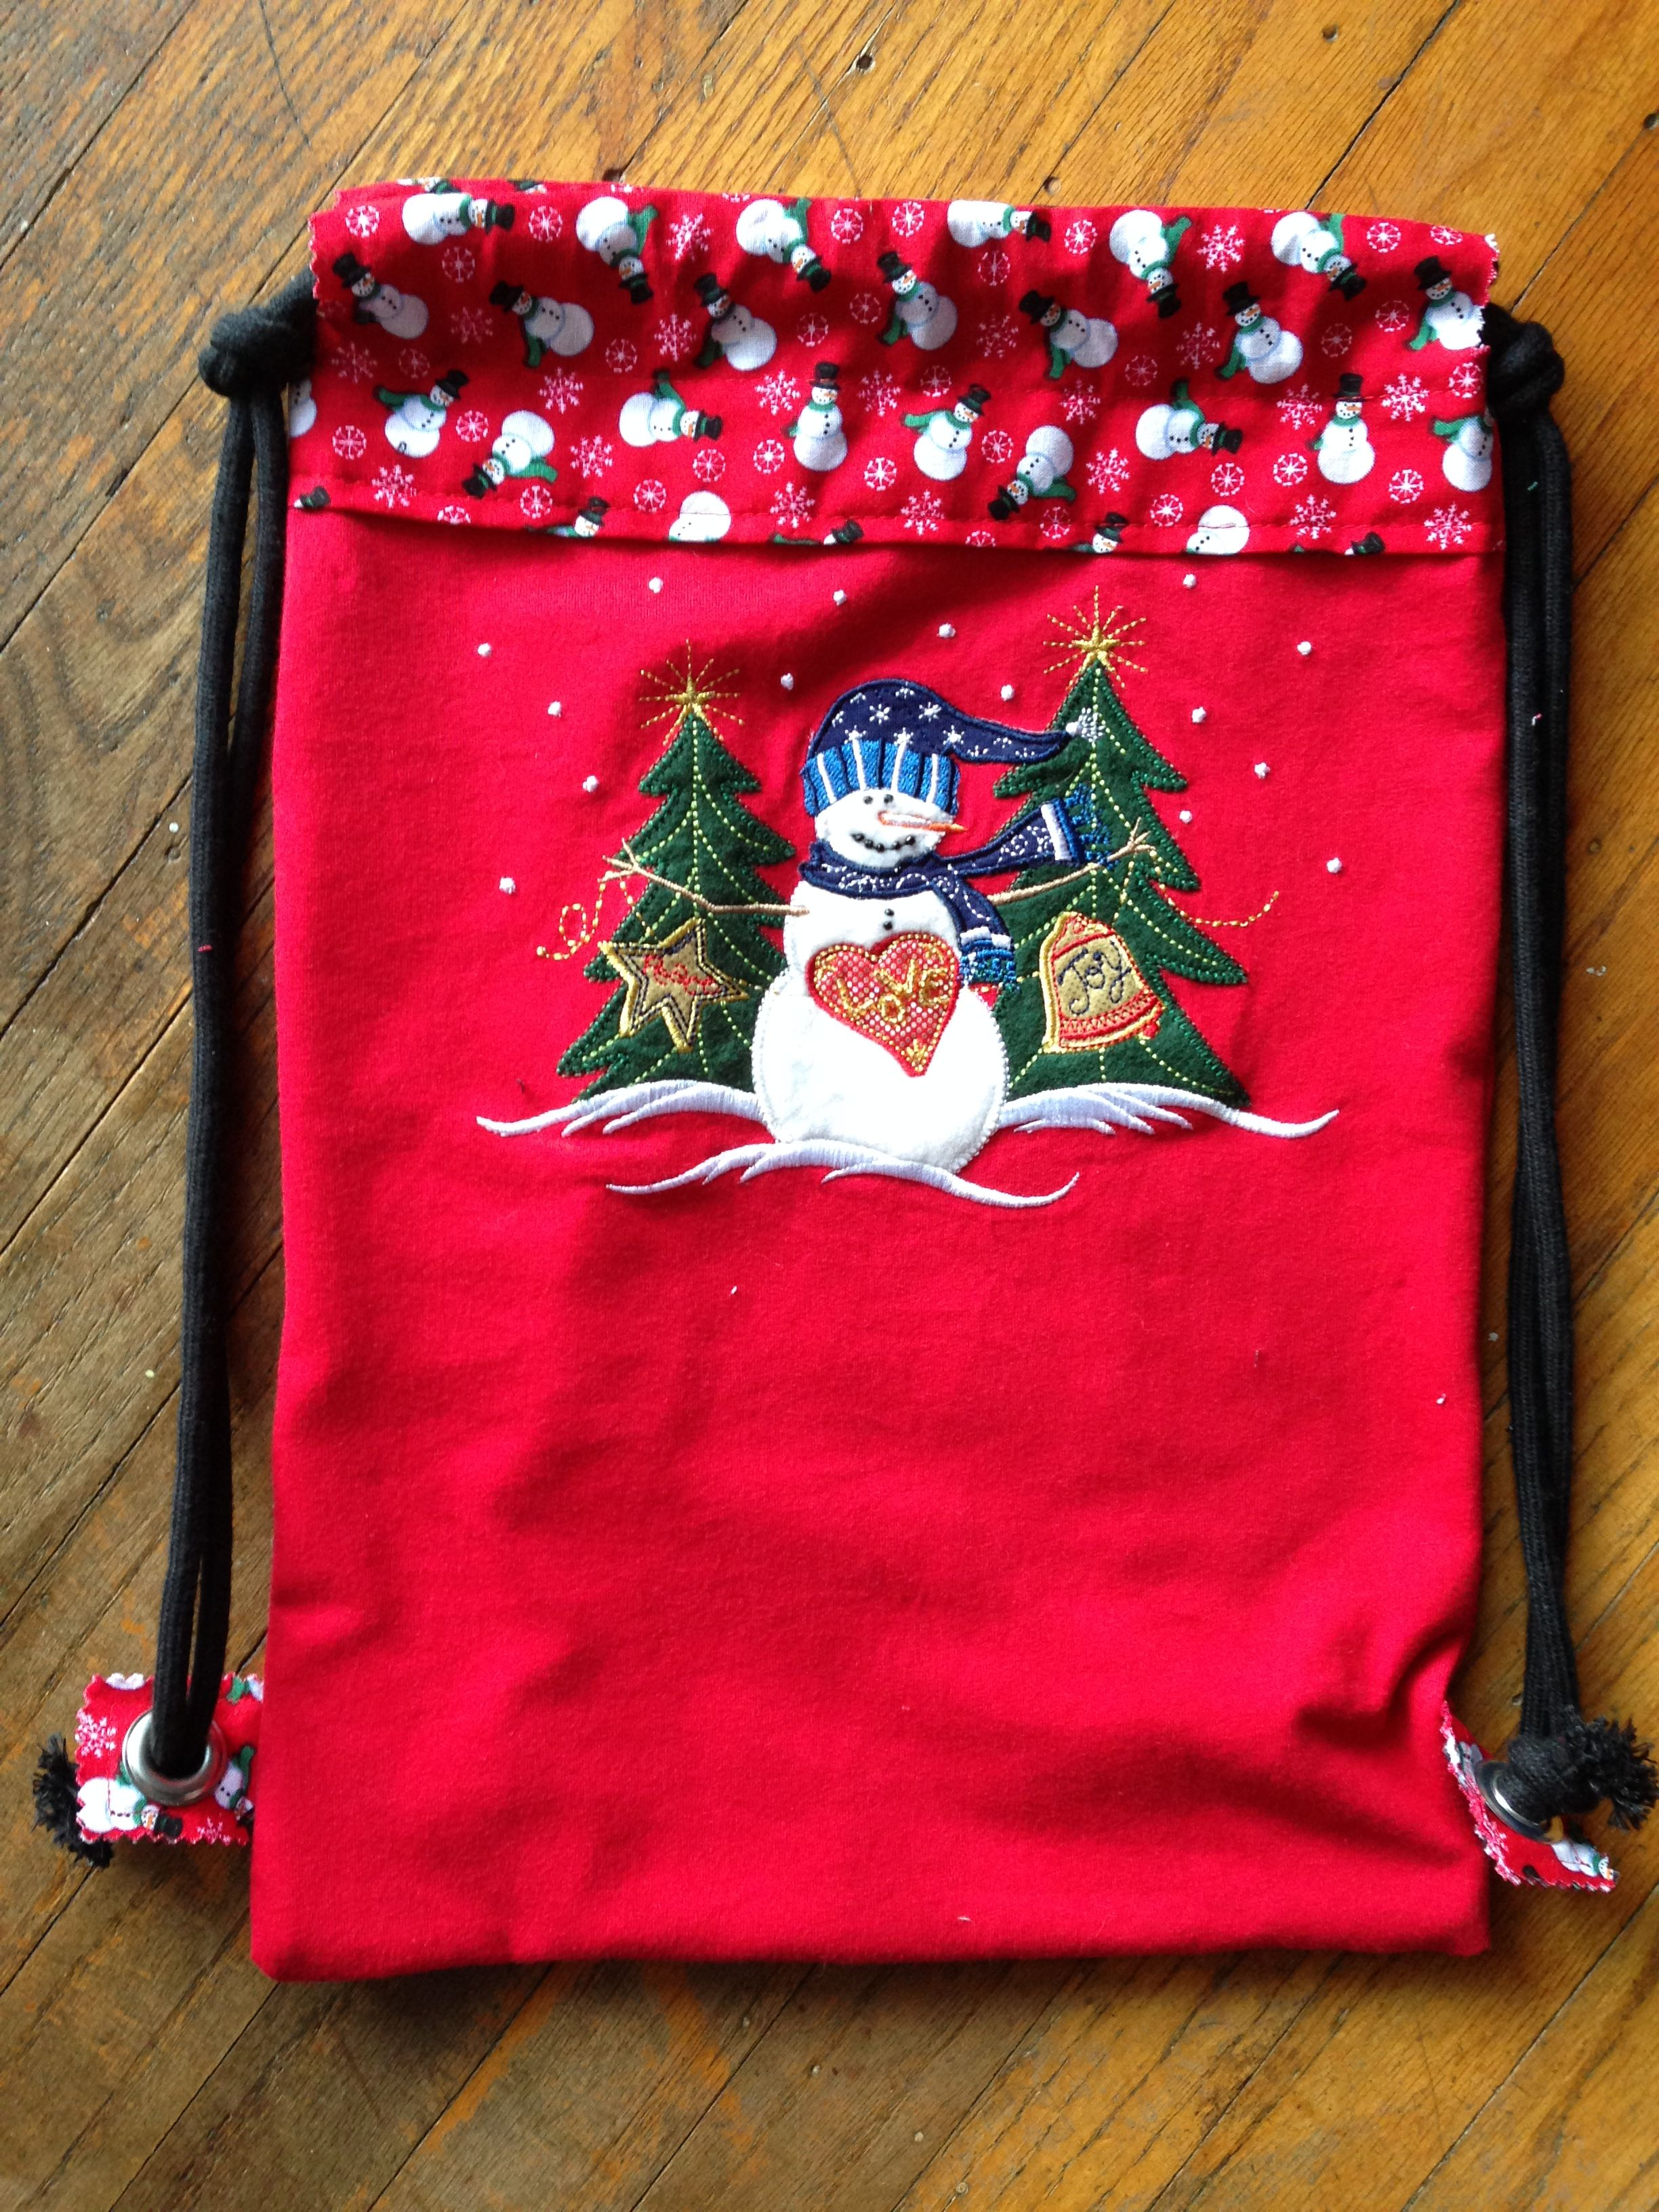 Red Snowman Backpack. This is my personal Christmas time bag. It was t shirt worthy of becoming a bag and looking better. It has beads inside the art work. soo cute.